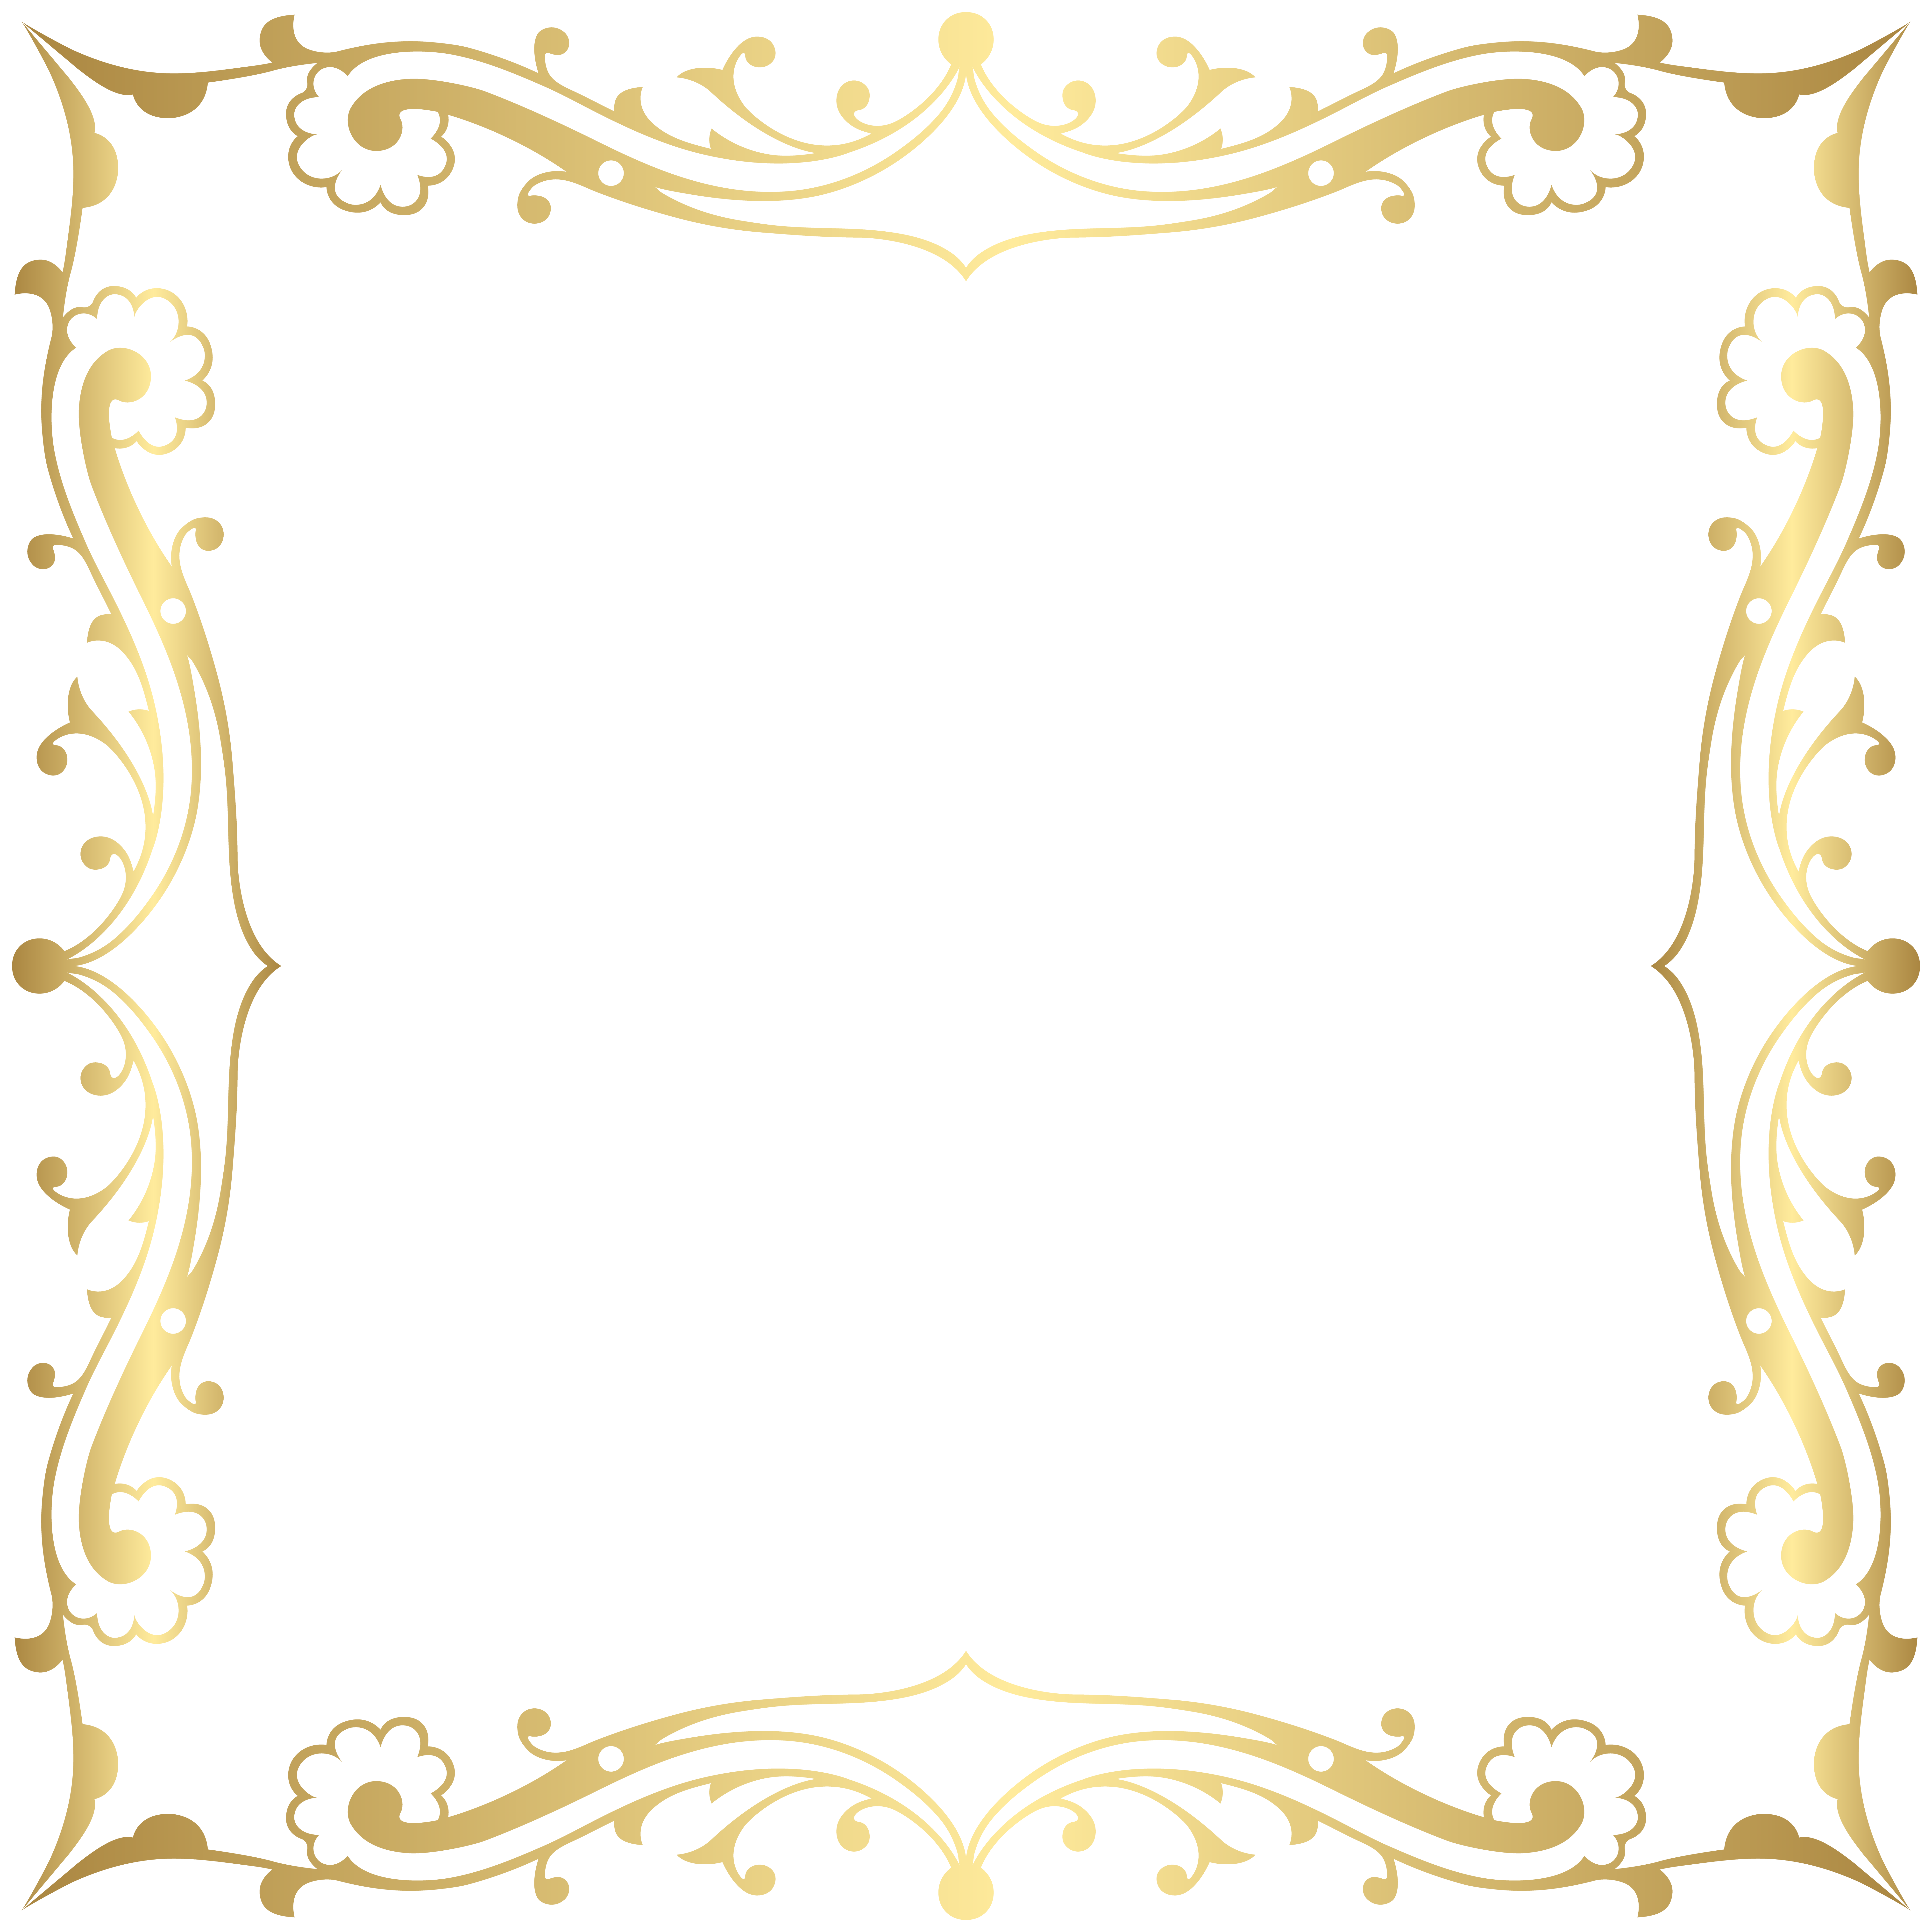 Picture frame clipart transparent picture royalty free library Decorative Border Frame Transparent Clip Art Image ... picture royalty free library